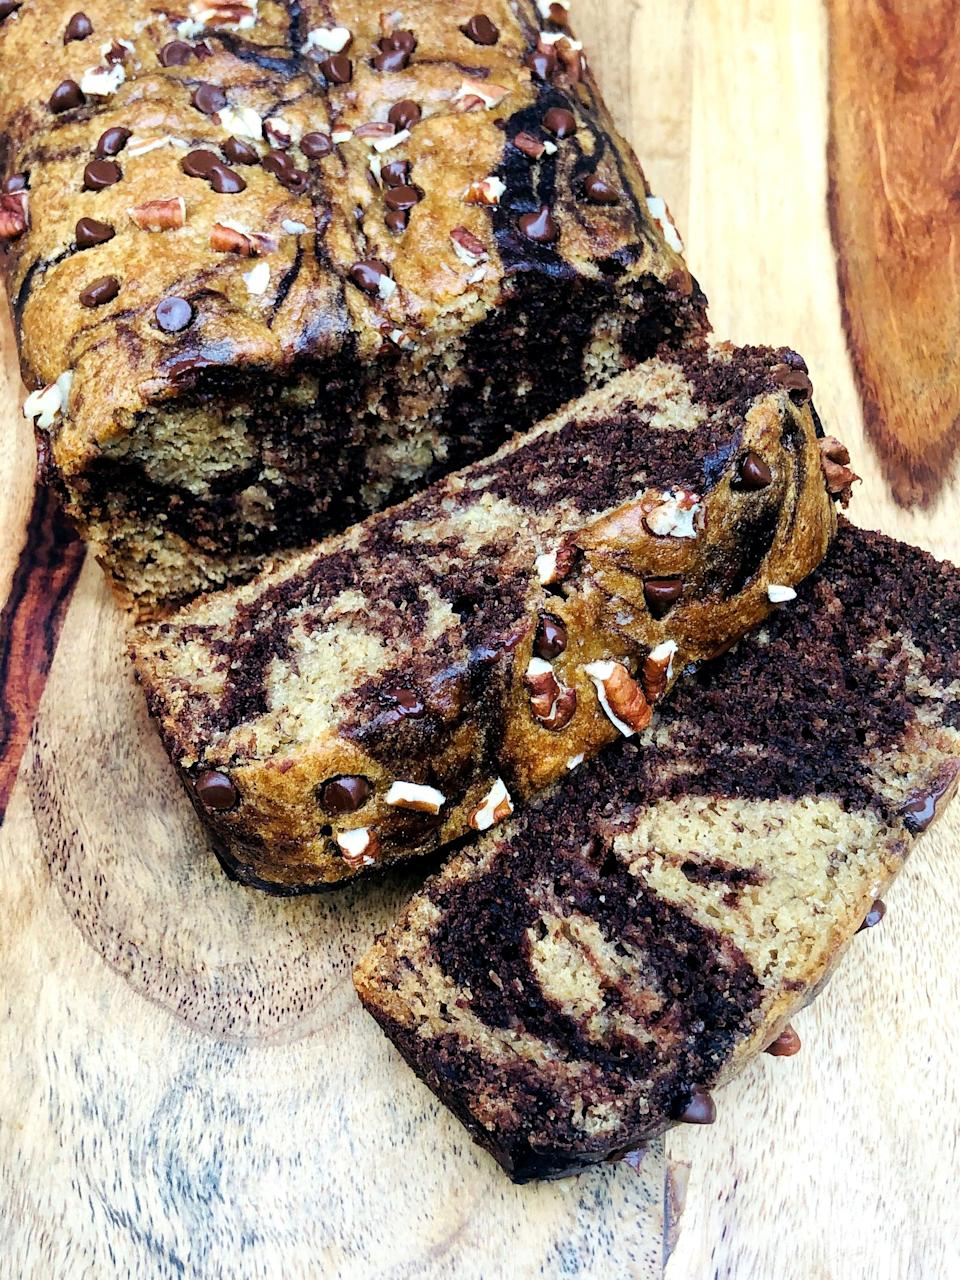 "<p>This vegan recipe is the perfect marriage between regular and chocolate banana bread, requires one bowl, and is done baking in 45 minutes. </p> <p><strong>Calories:</strong> 212 per slice<br> <strong>Protein:</strong> 9.9 grams</p> <p><strong>Get the recipe:</strong> <a href=""https://www.popsugar.com/fitness/marbled-protein-chocolate-banana-bread-recipe-47520069"" class=""link rapid-noclick-resp"" rel=""nofollow noopener"" target=""_blank"" data-ylk=""slk:vegan chocolate marbled banana protein bread"">vegan chocolate marbled banana protein bread</a></p>"